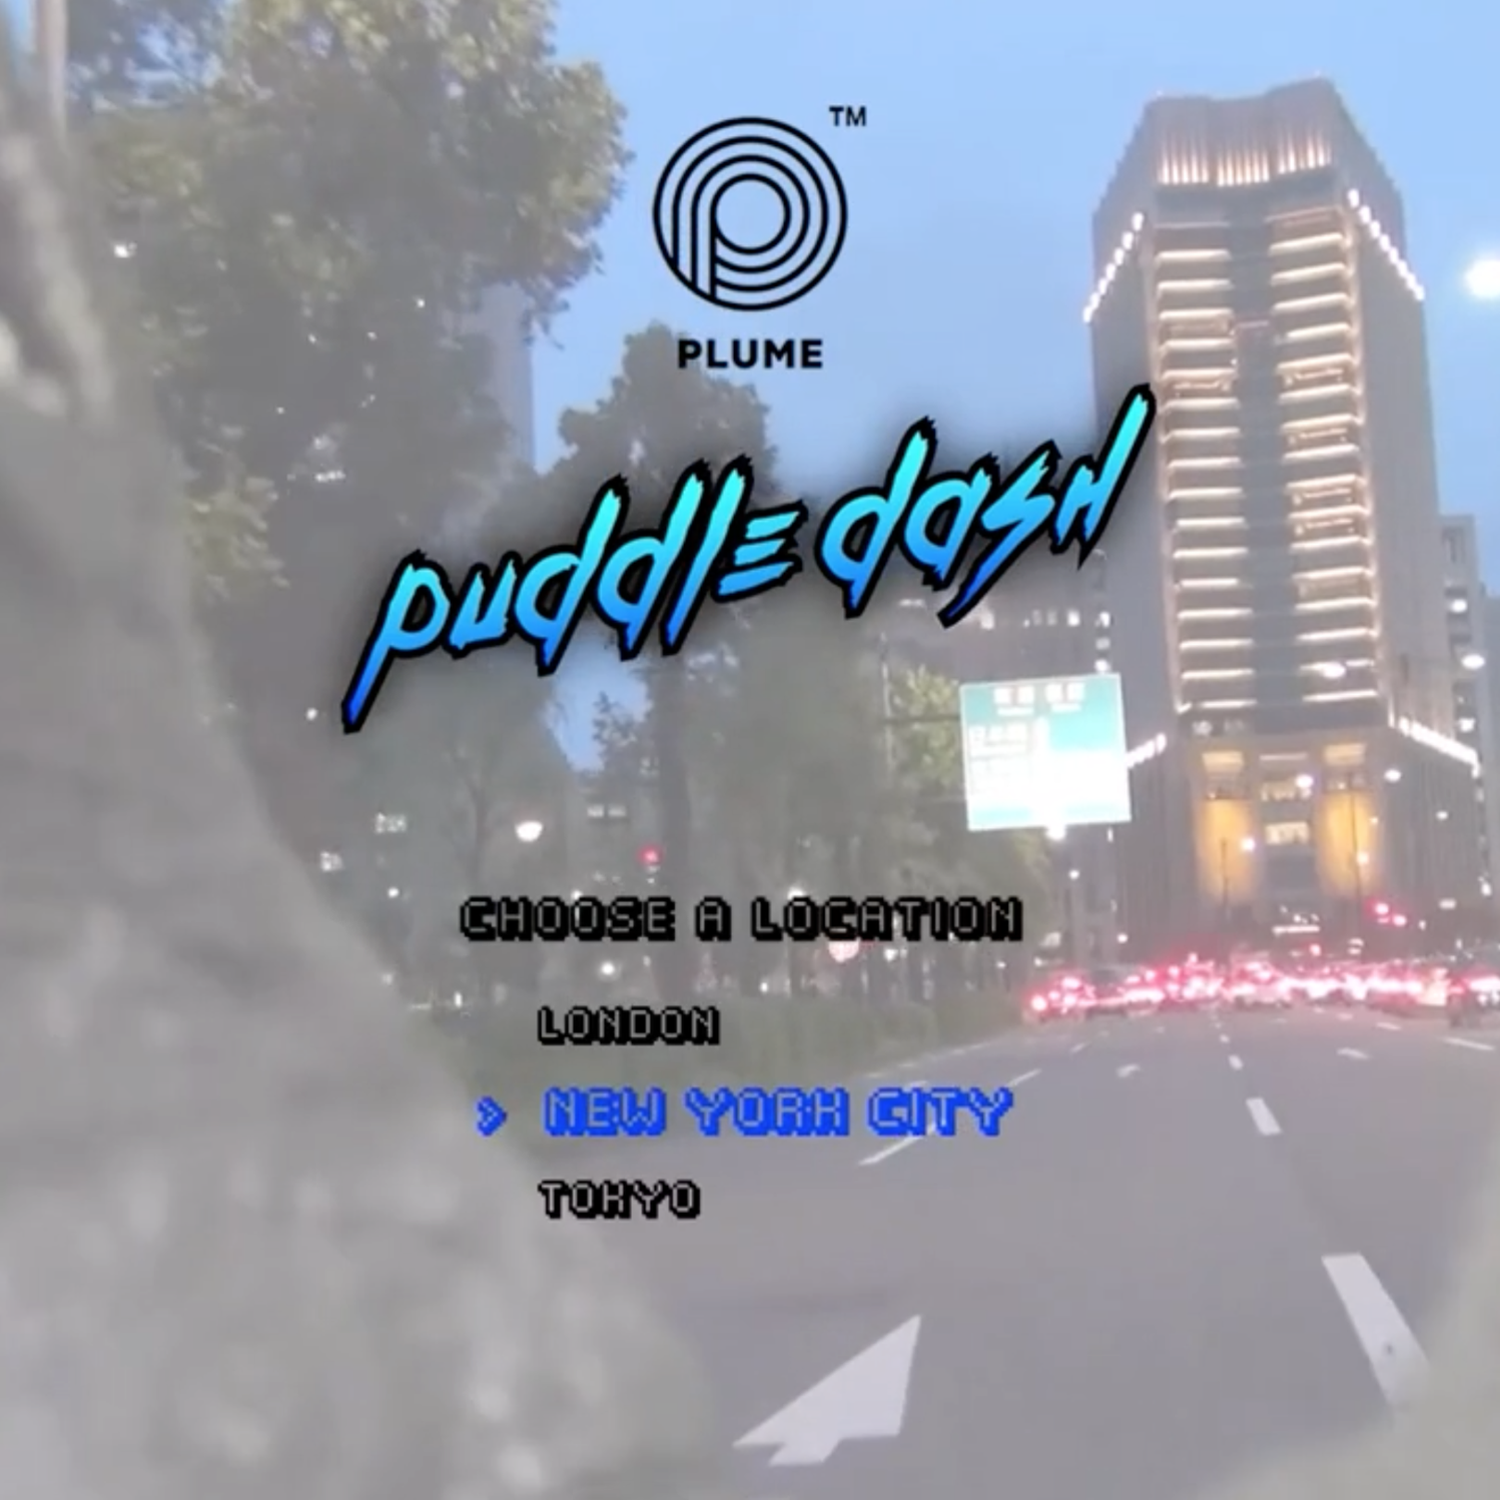 'Puddle Dash' the Plume mudguard video game